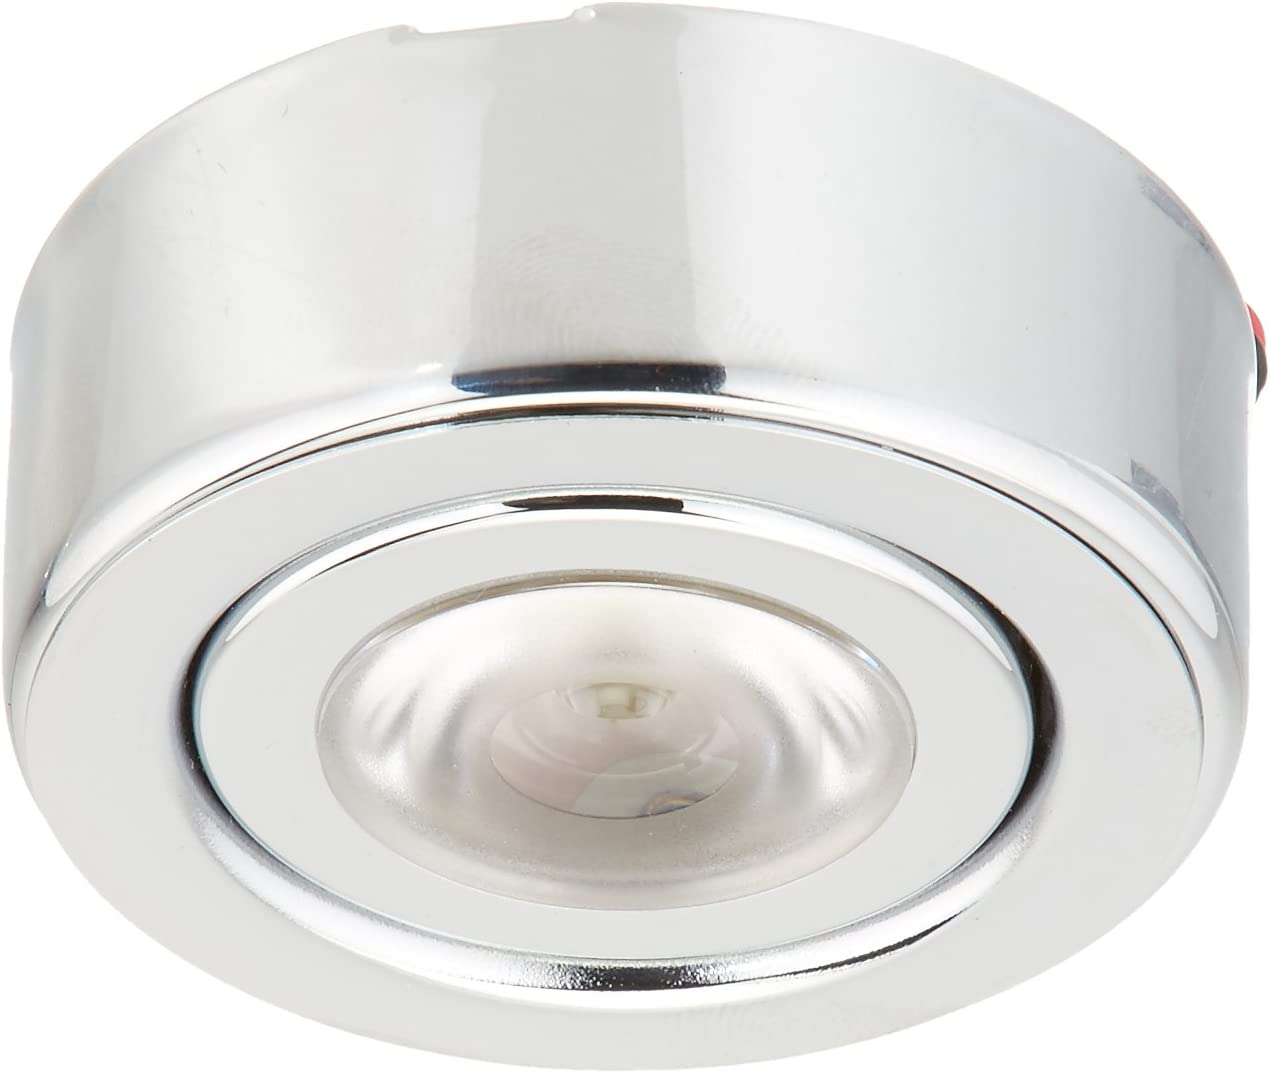 Alico Lighting MLE-101-15 LED Price reduction Cash special price Puk Ring Collection with Mounting